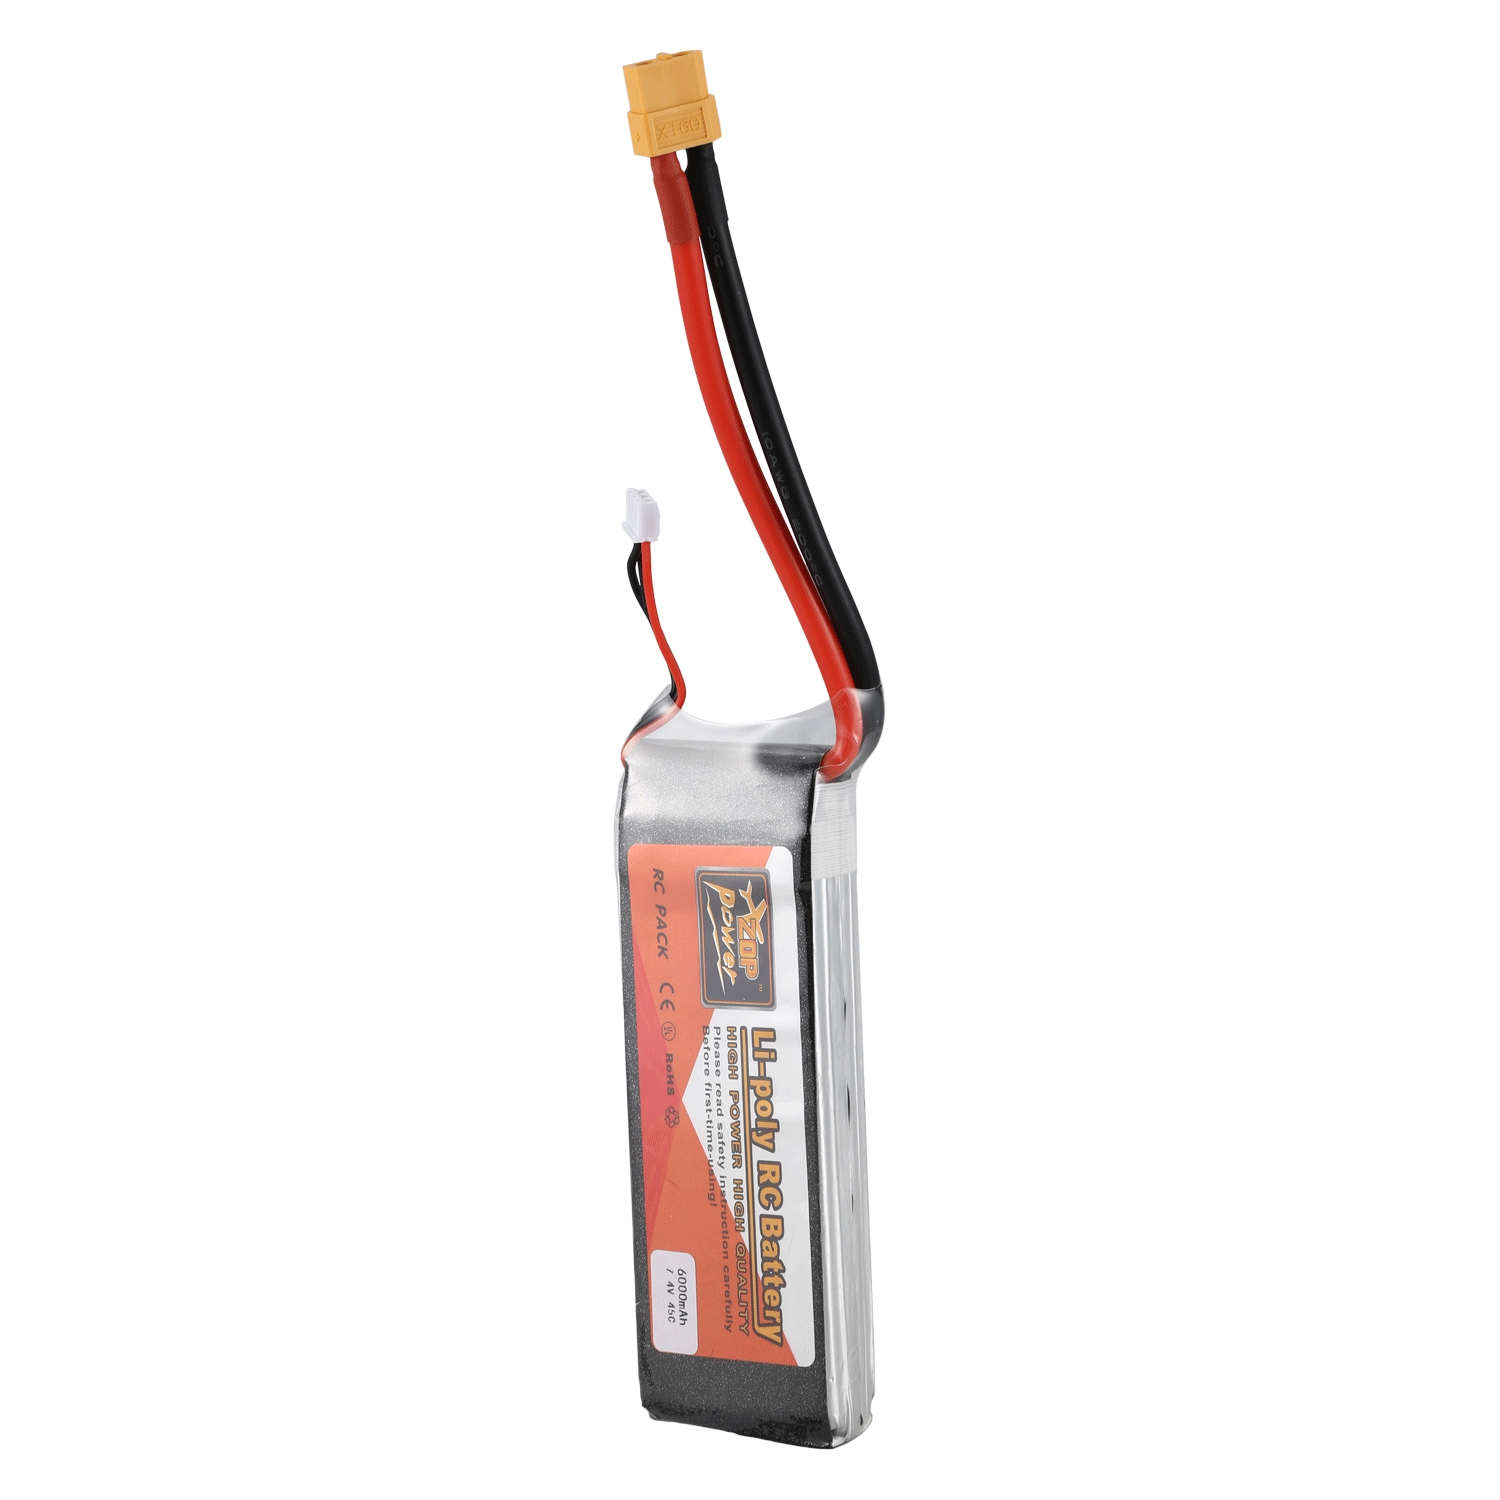 ZOP POWER 7.4V <font><b>6000mah</b></font> 45C <font><b>2S</b></font> <font><b>Lipo</b></font> Battery XT60 Plug Connector For Rc Racing Car Camera Drones FPV Quadcopter Accs Spare Parts image